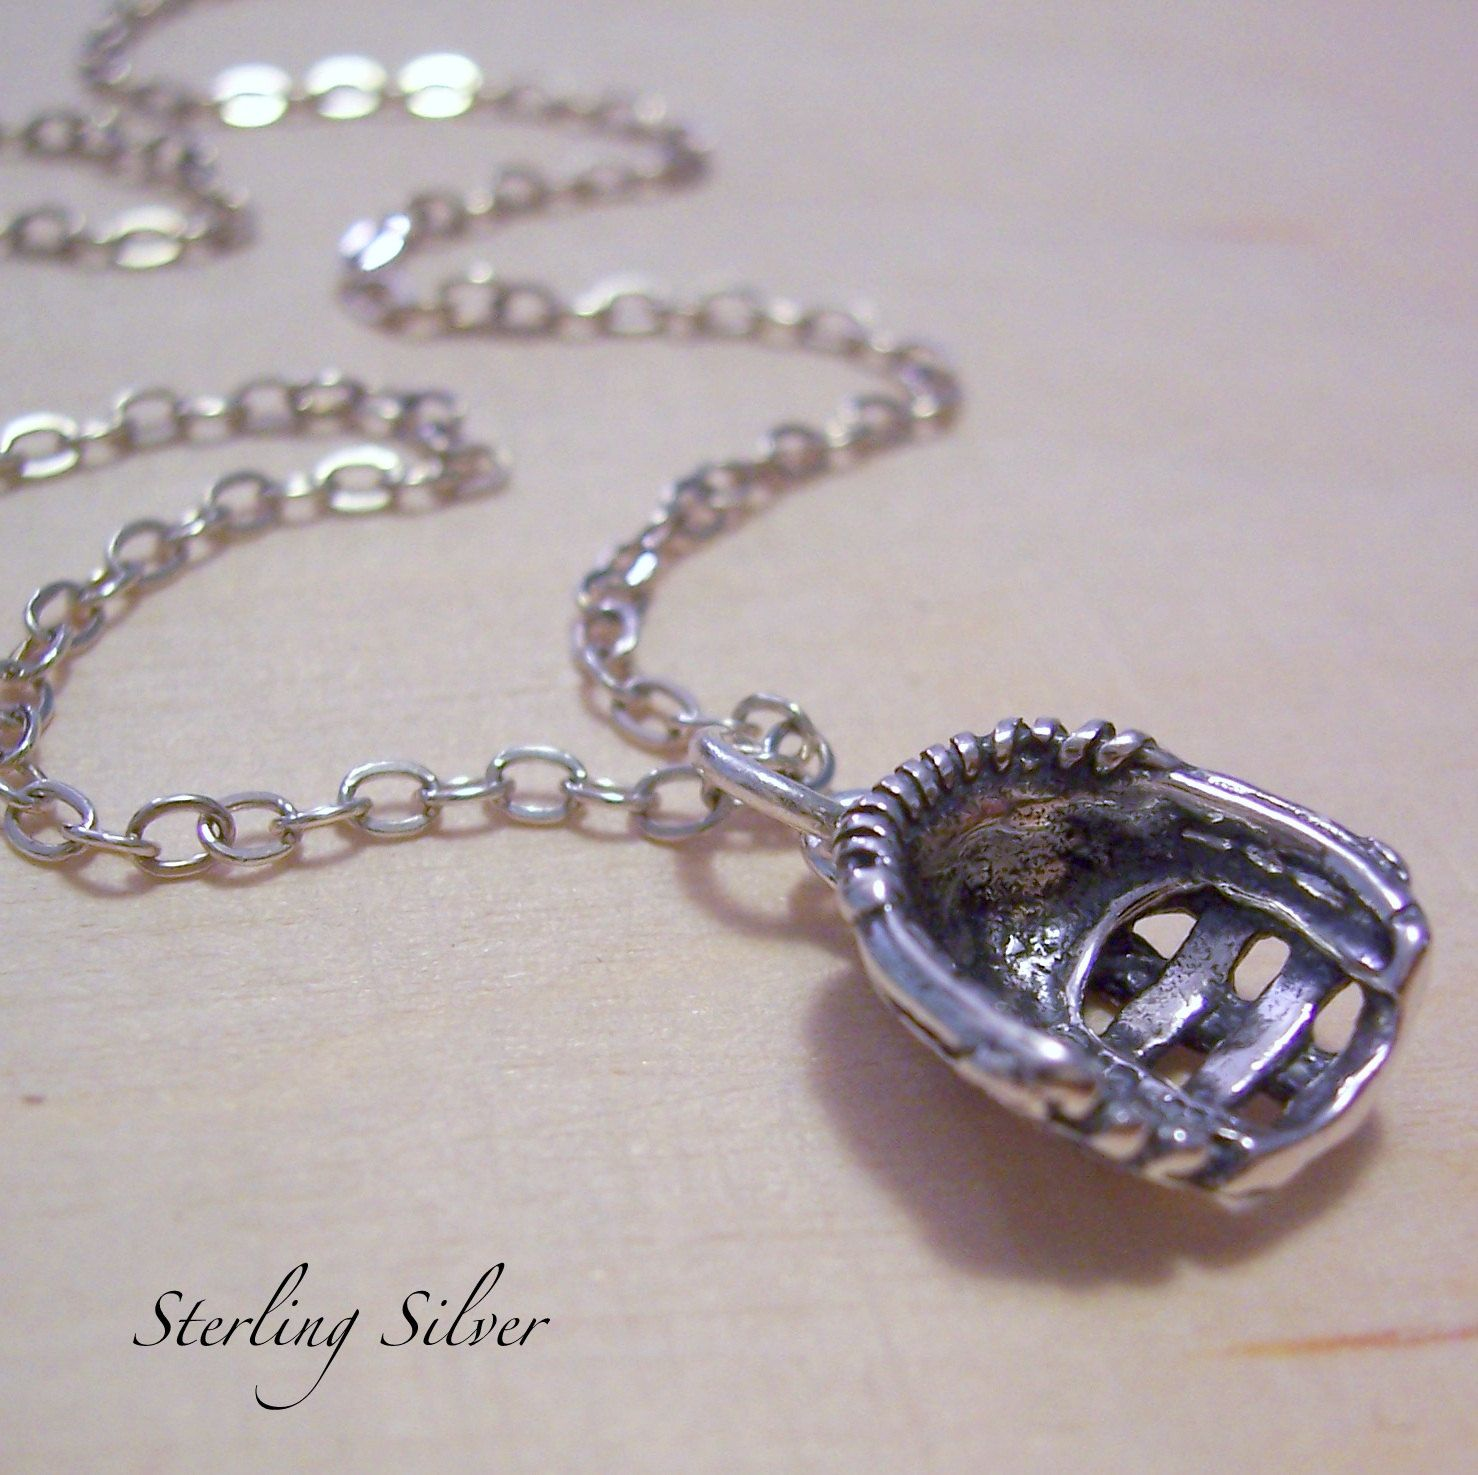 softball necklace necklaces and jewelry eg stainless baseball heart name steel shaped engraved